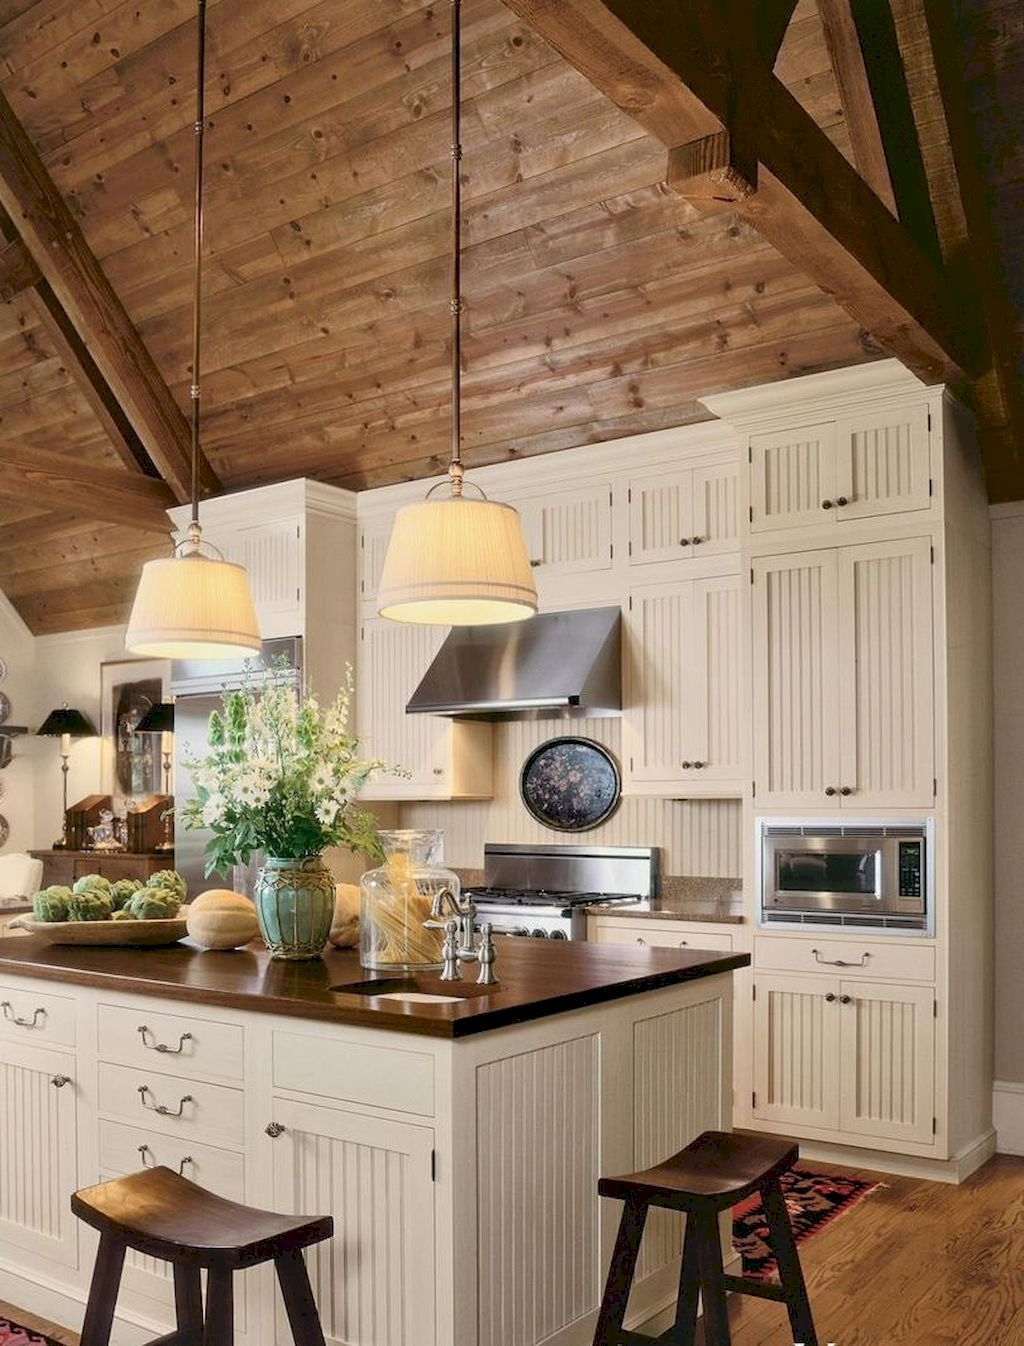 best rustic farmhouse kitchen cabinets in list 45 farmhouse style kitchen rustic kitchen on kitchen cabinets farmhouse style id=82778